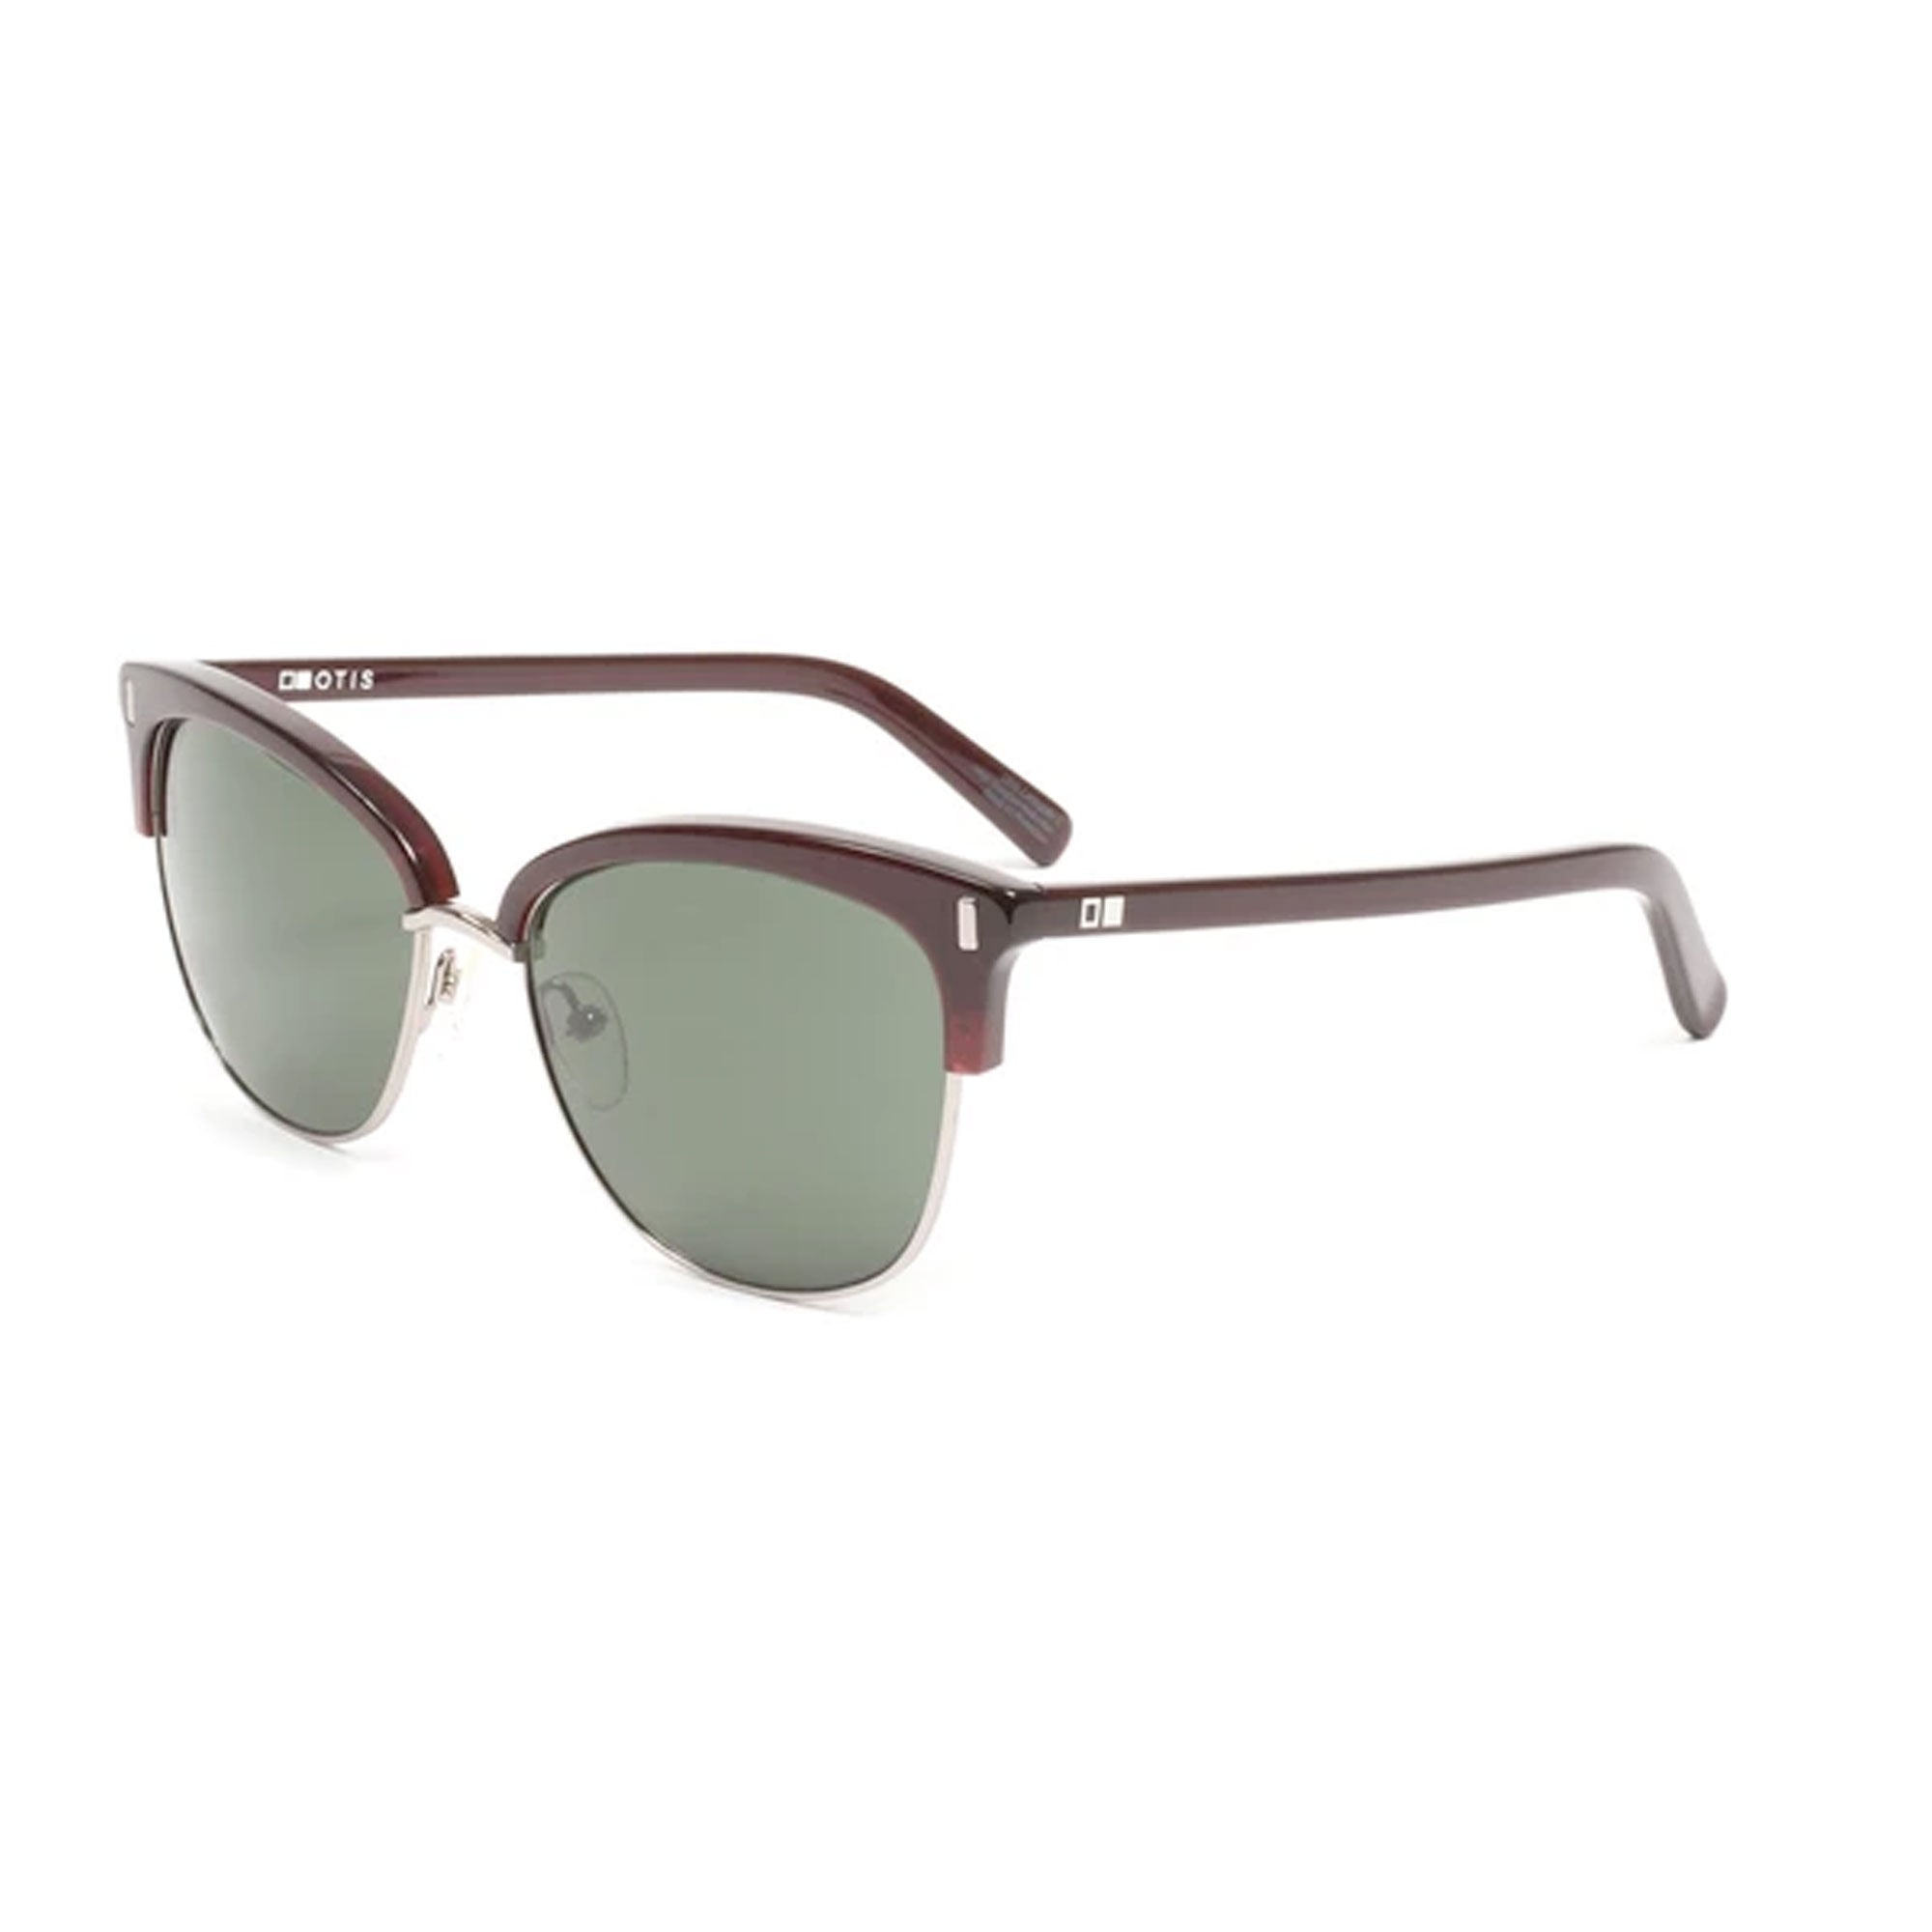 Otis Little Lies Women's Sunglasses - Transparent Cherry/Grey